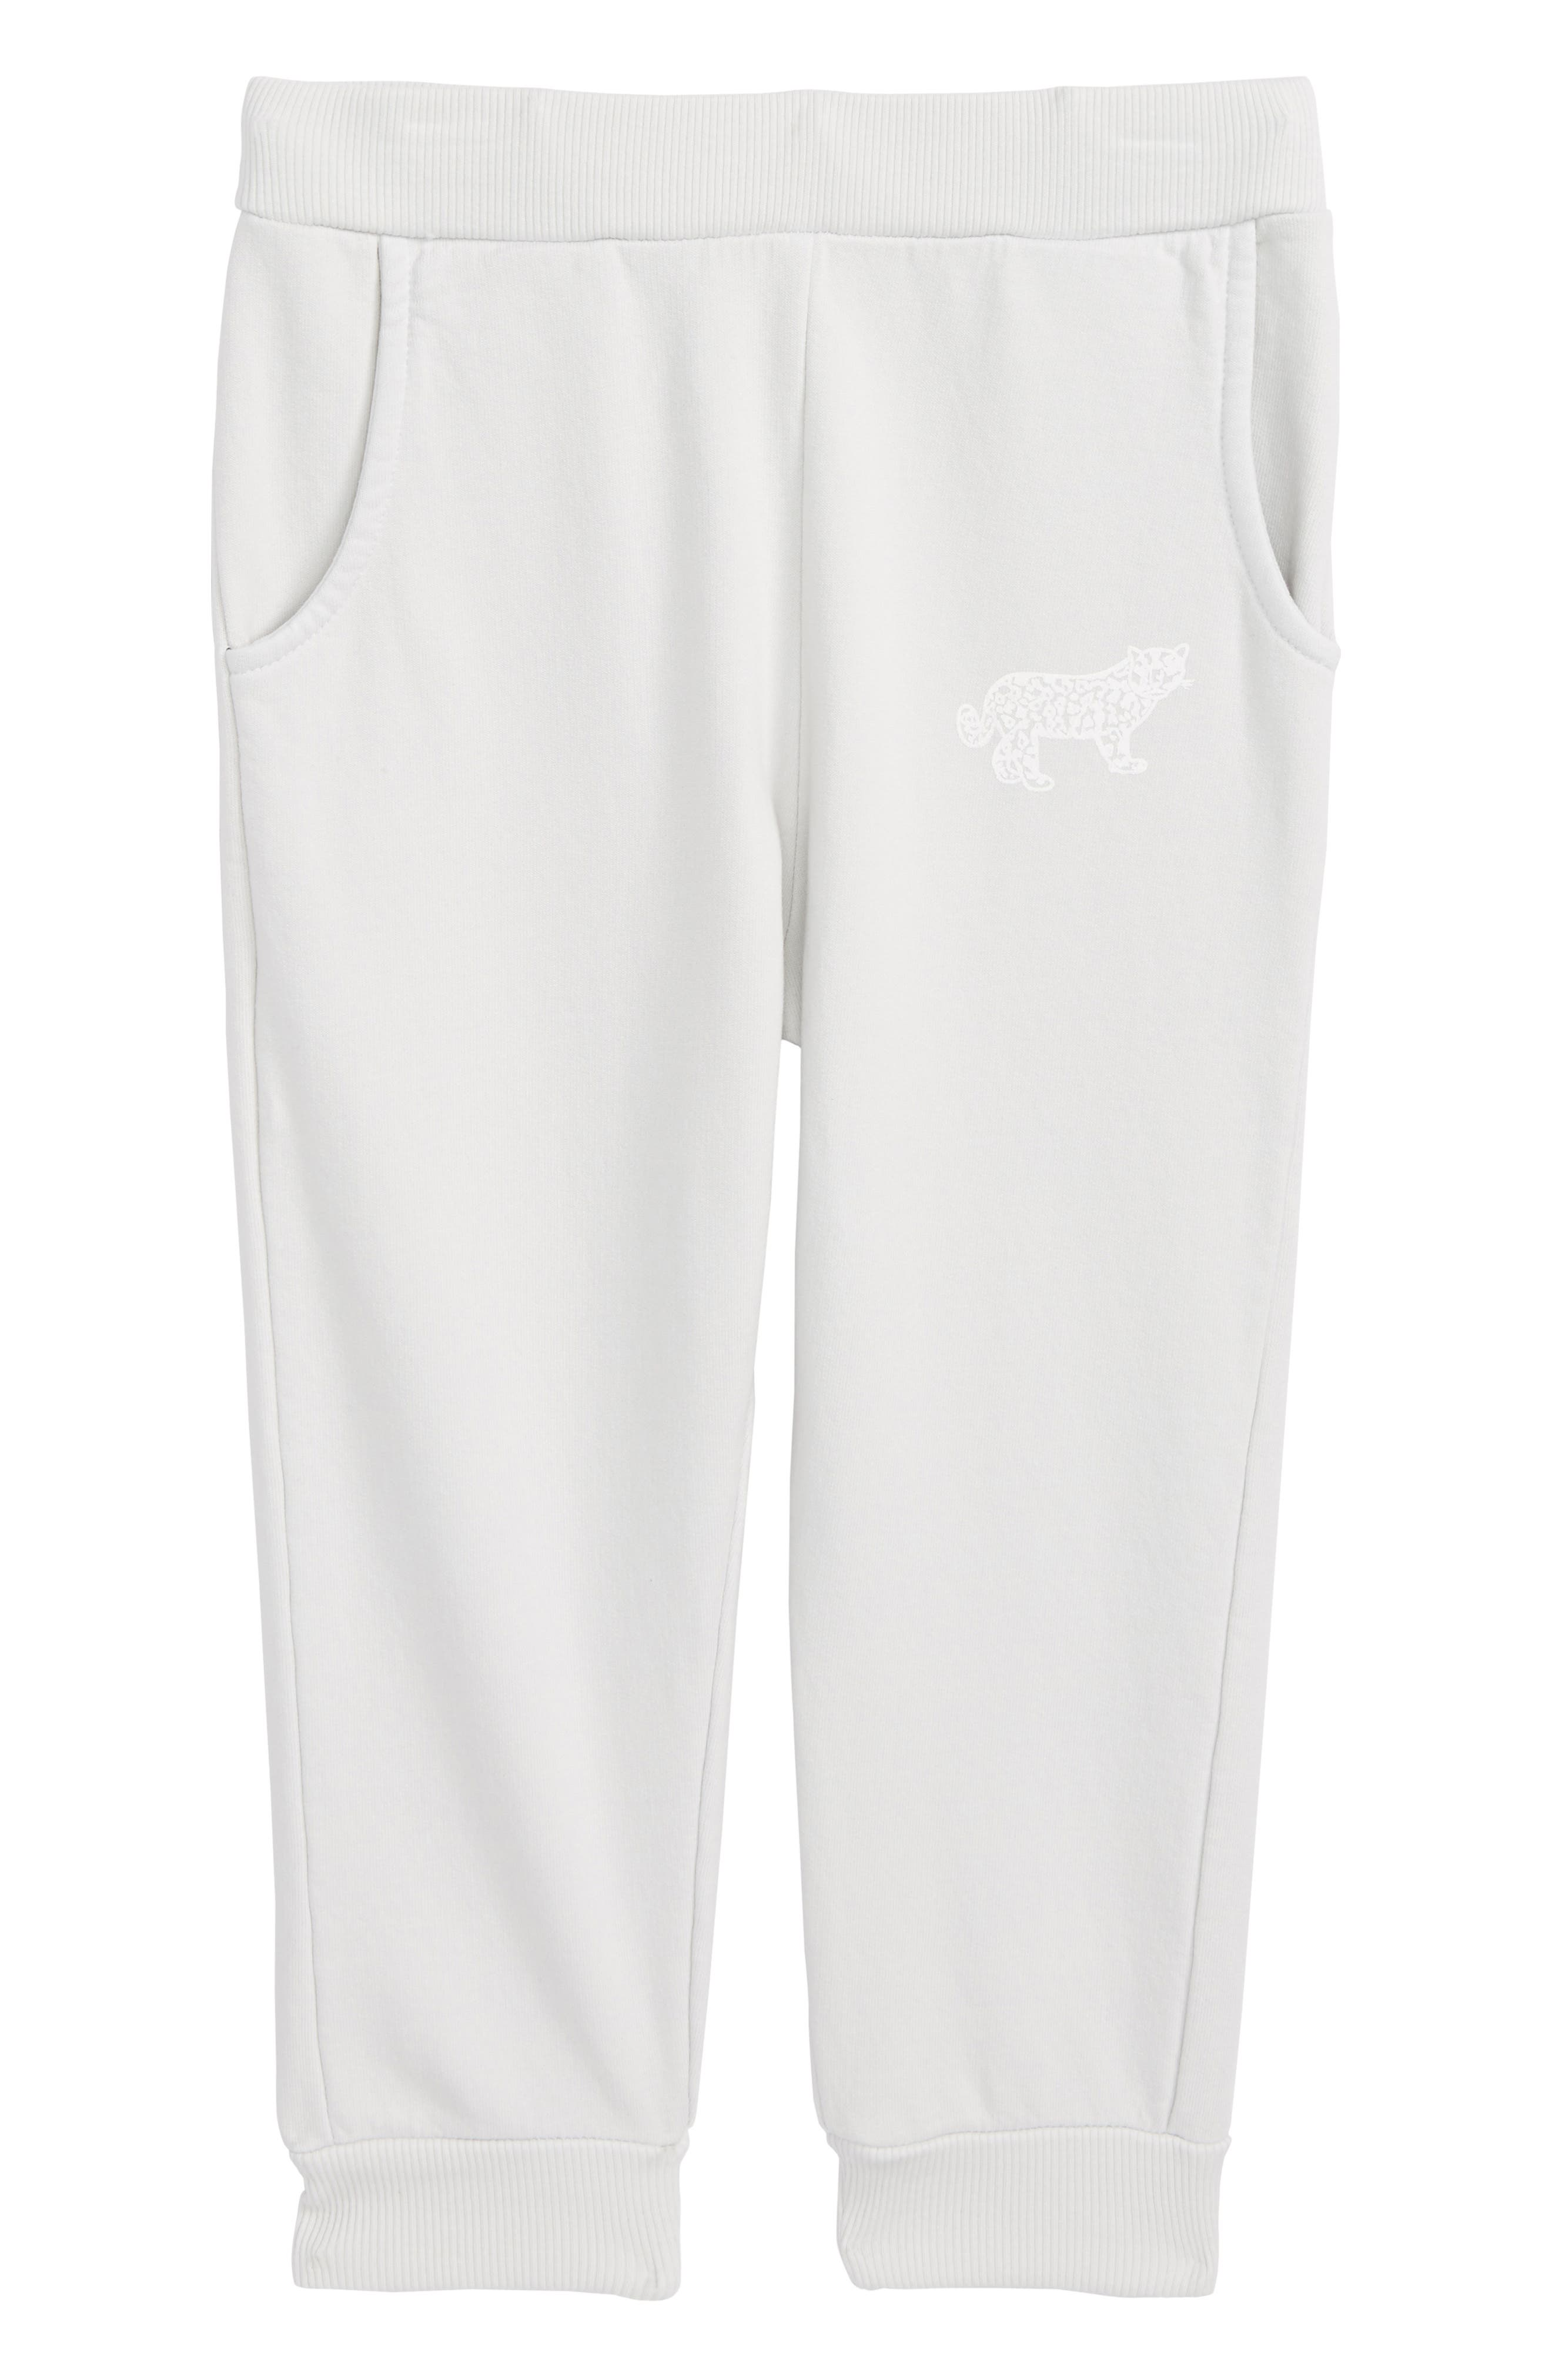 Ryan Jogger Pants,                             Main thumbnail 1, color,                             Pebble